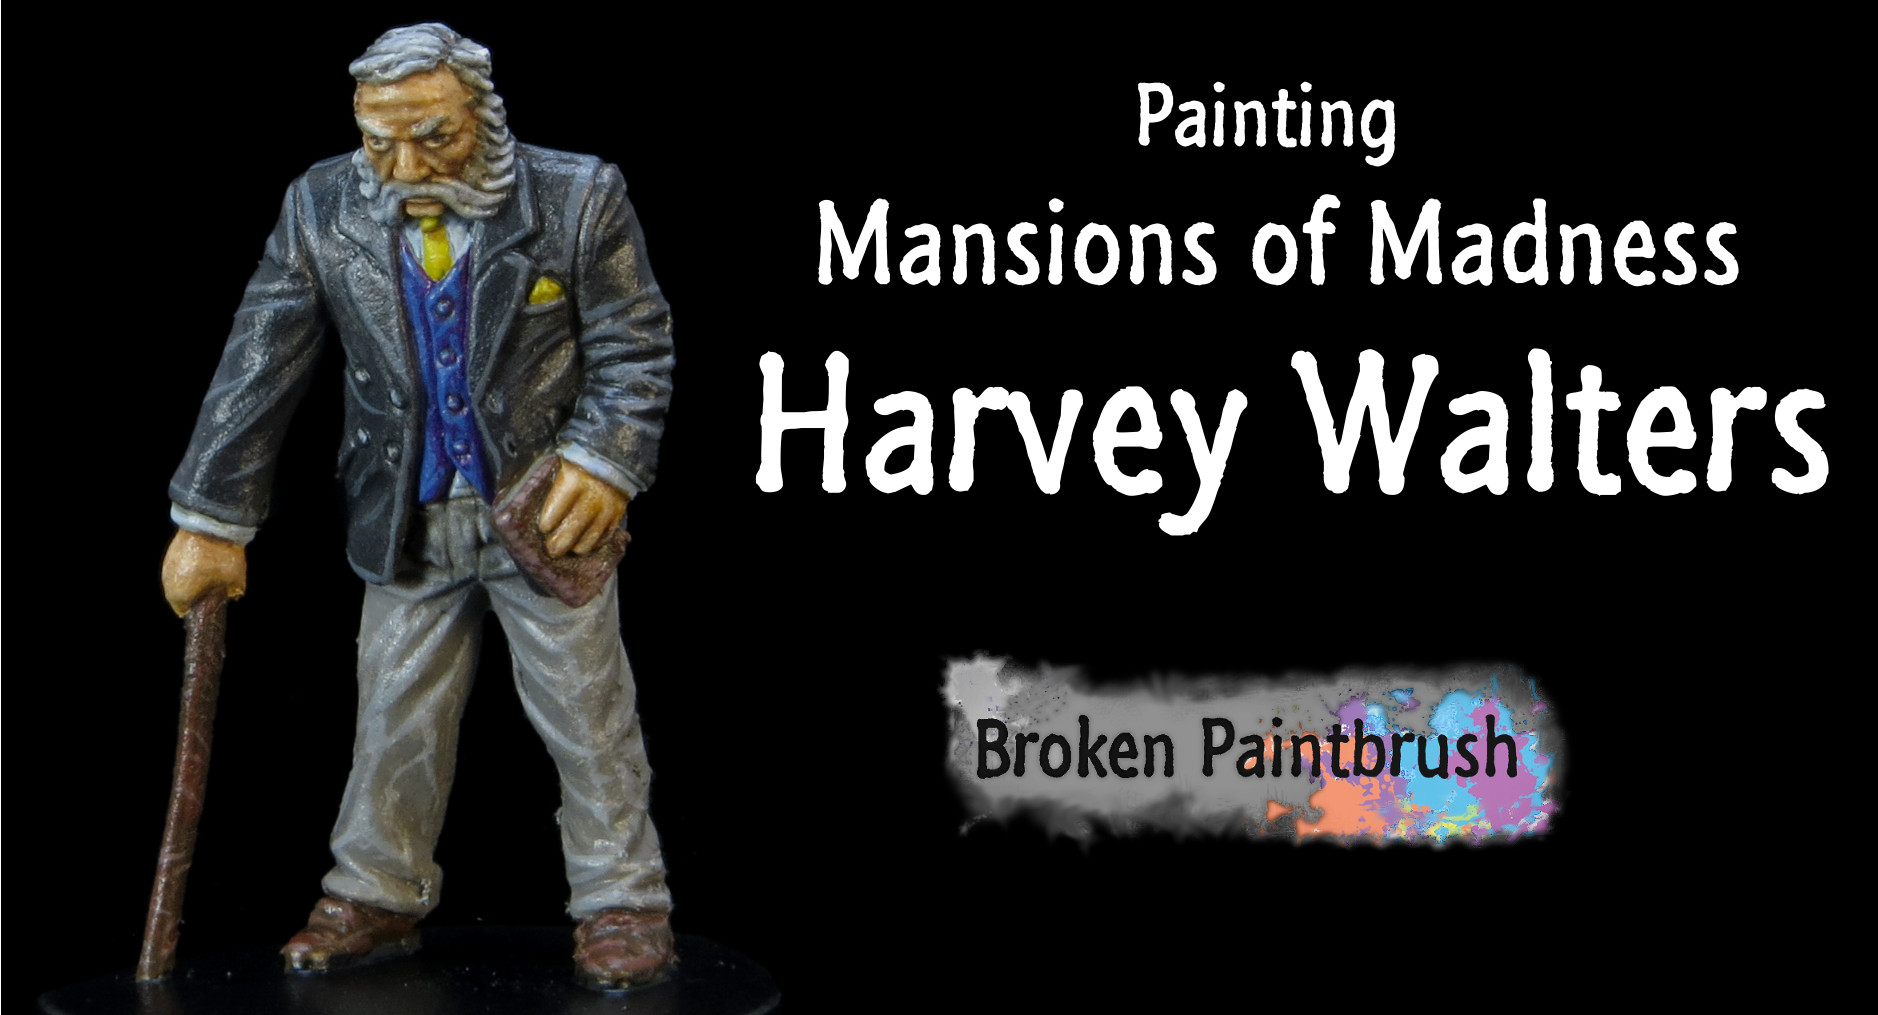 Harvey Walters from Mansions of Madness